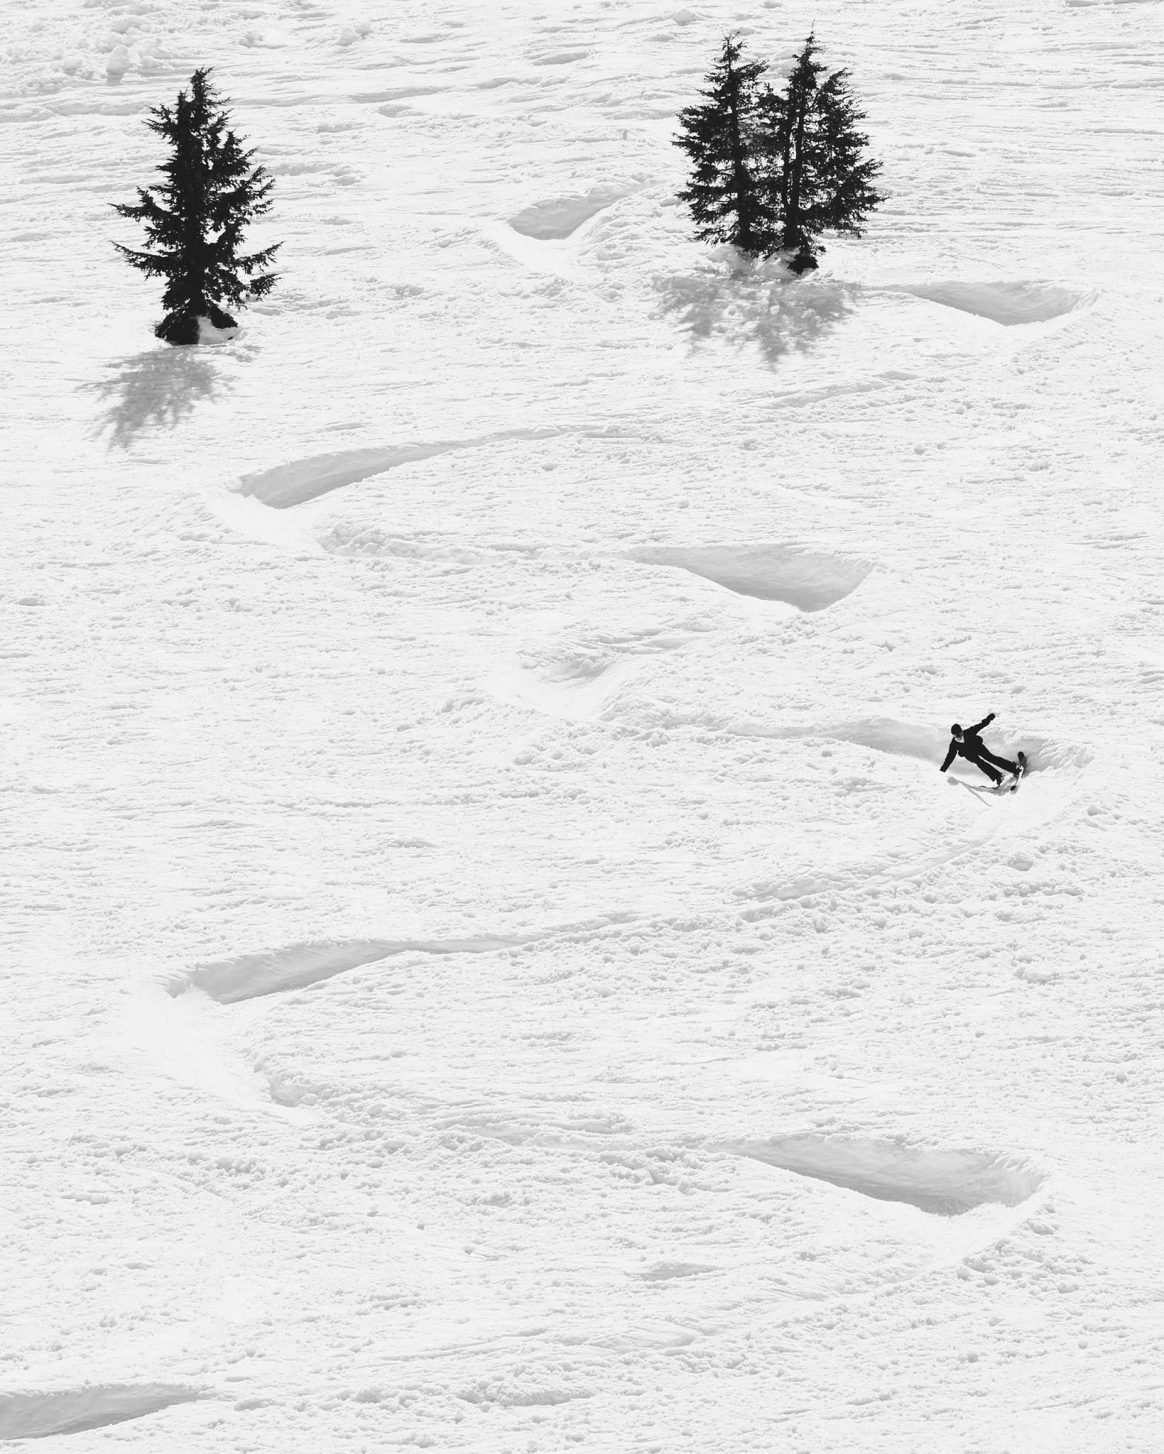 Rosina Friedel, SuperUnknown XV finalist, skis a snake run at Mammoth Mountain.